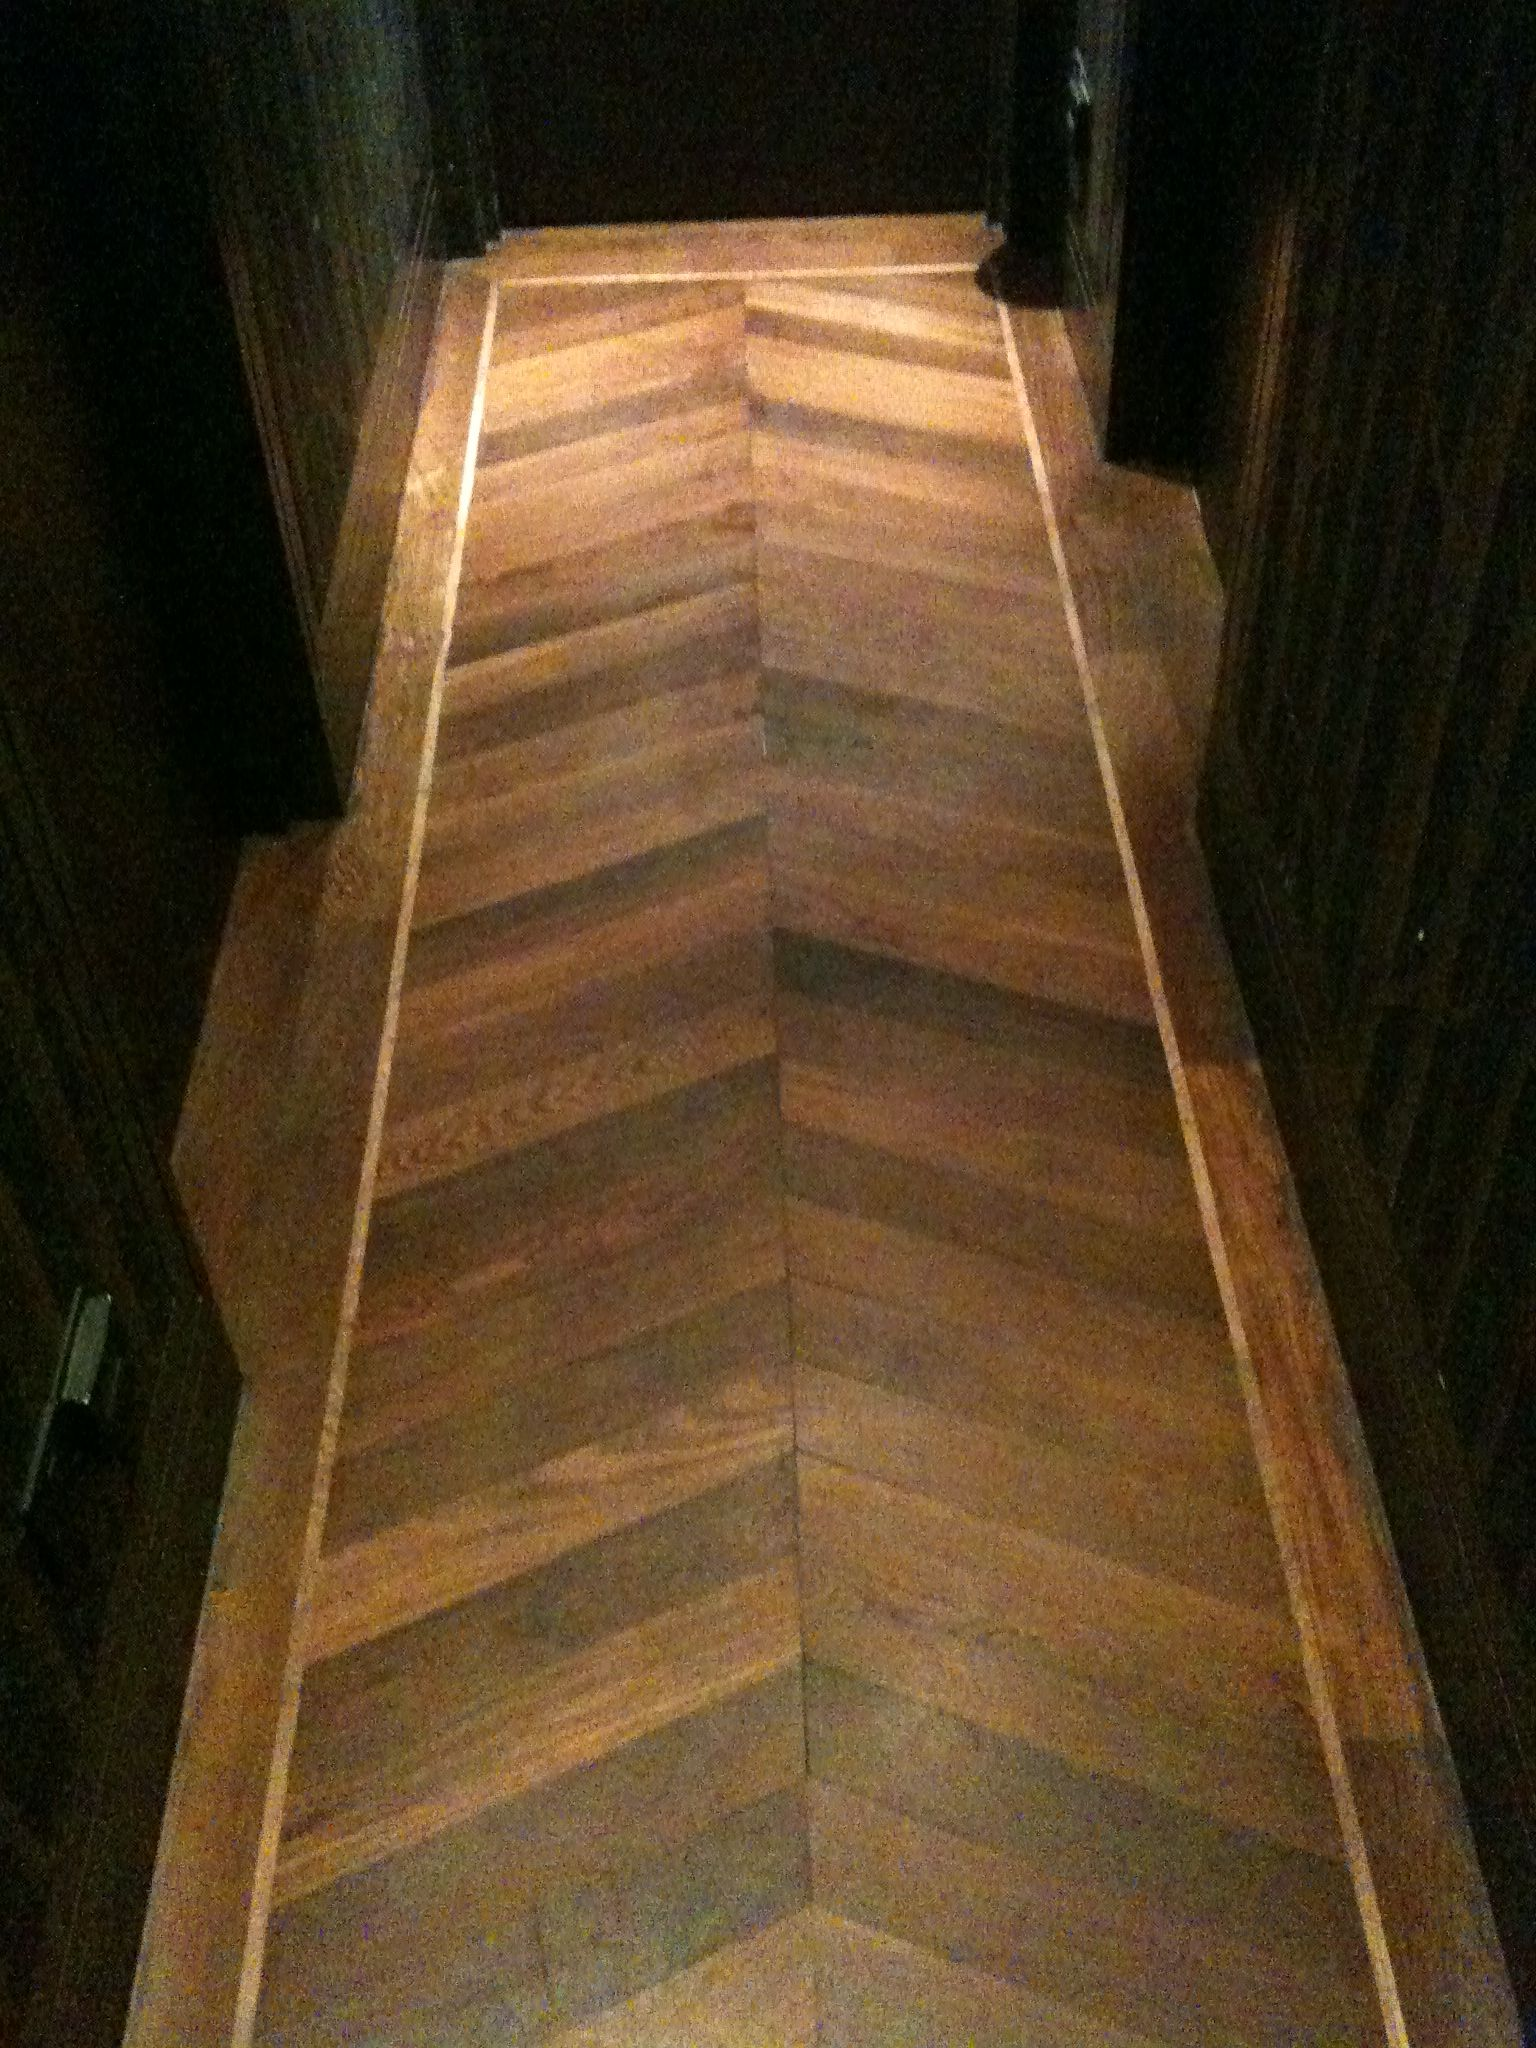 century parquet geometric styles layer guide to floors are an gorgeous first a the patterns parkay different blocks glued other wood create france in made under used that and from flooring floor